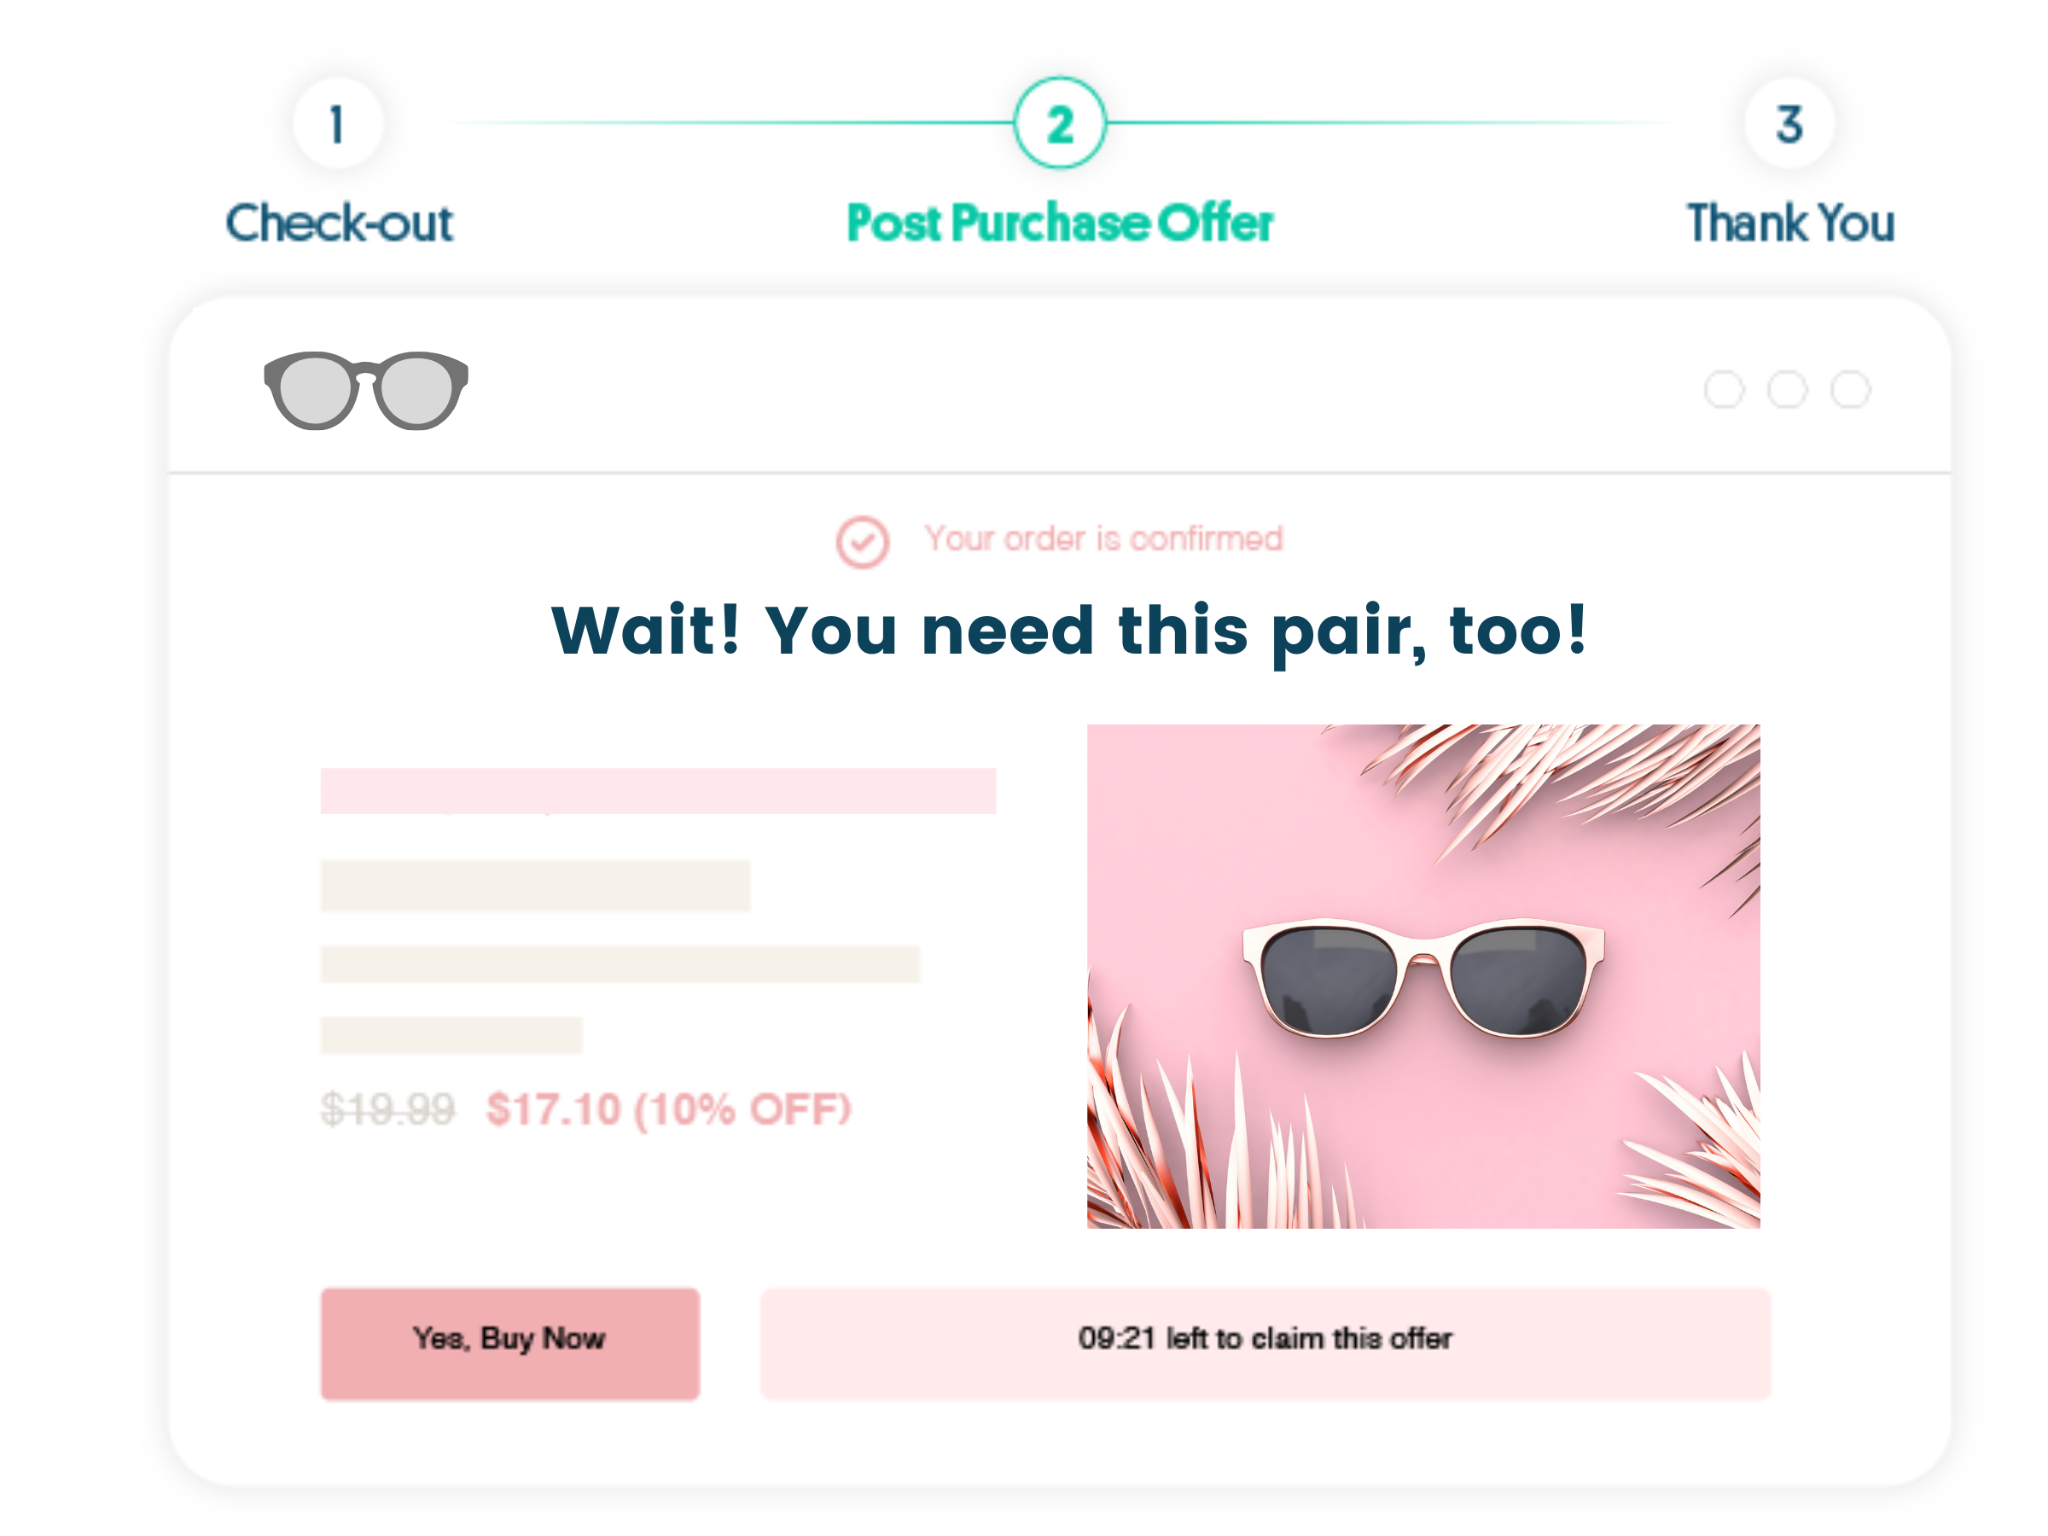 Customize upsells to match your brand